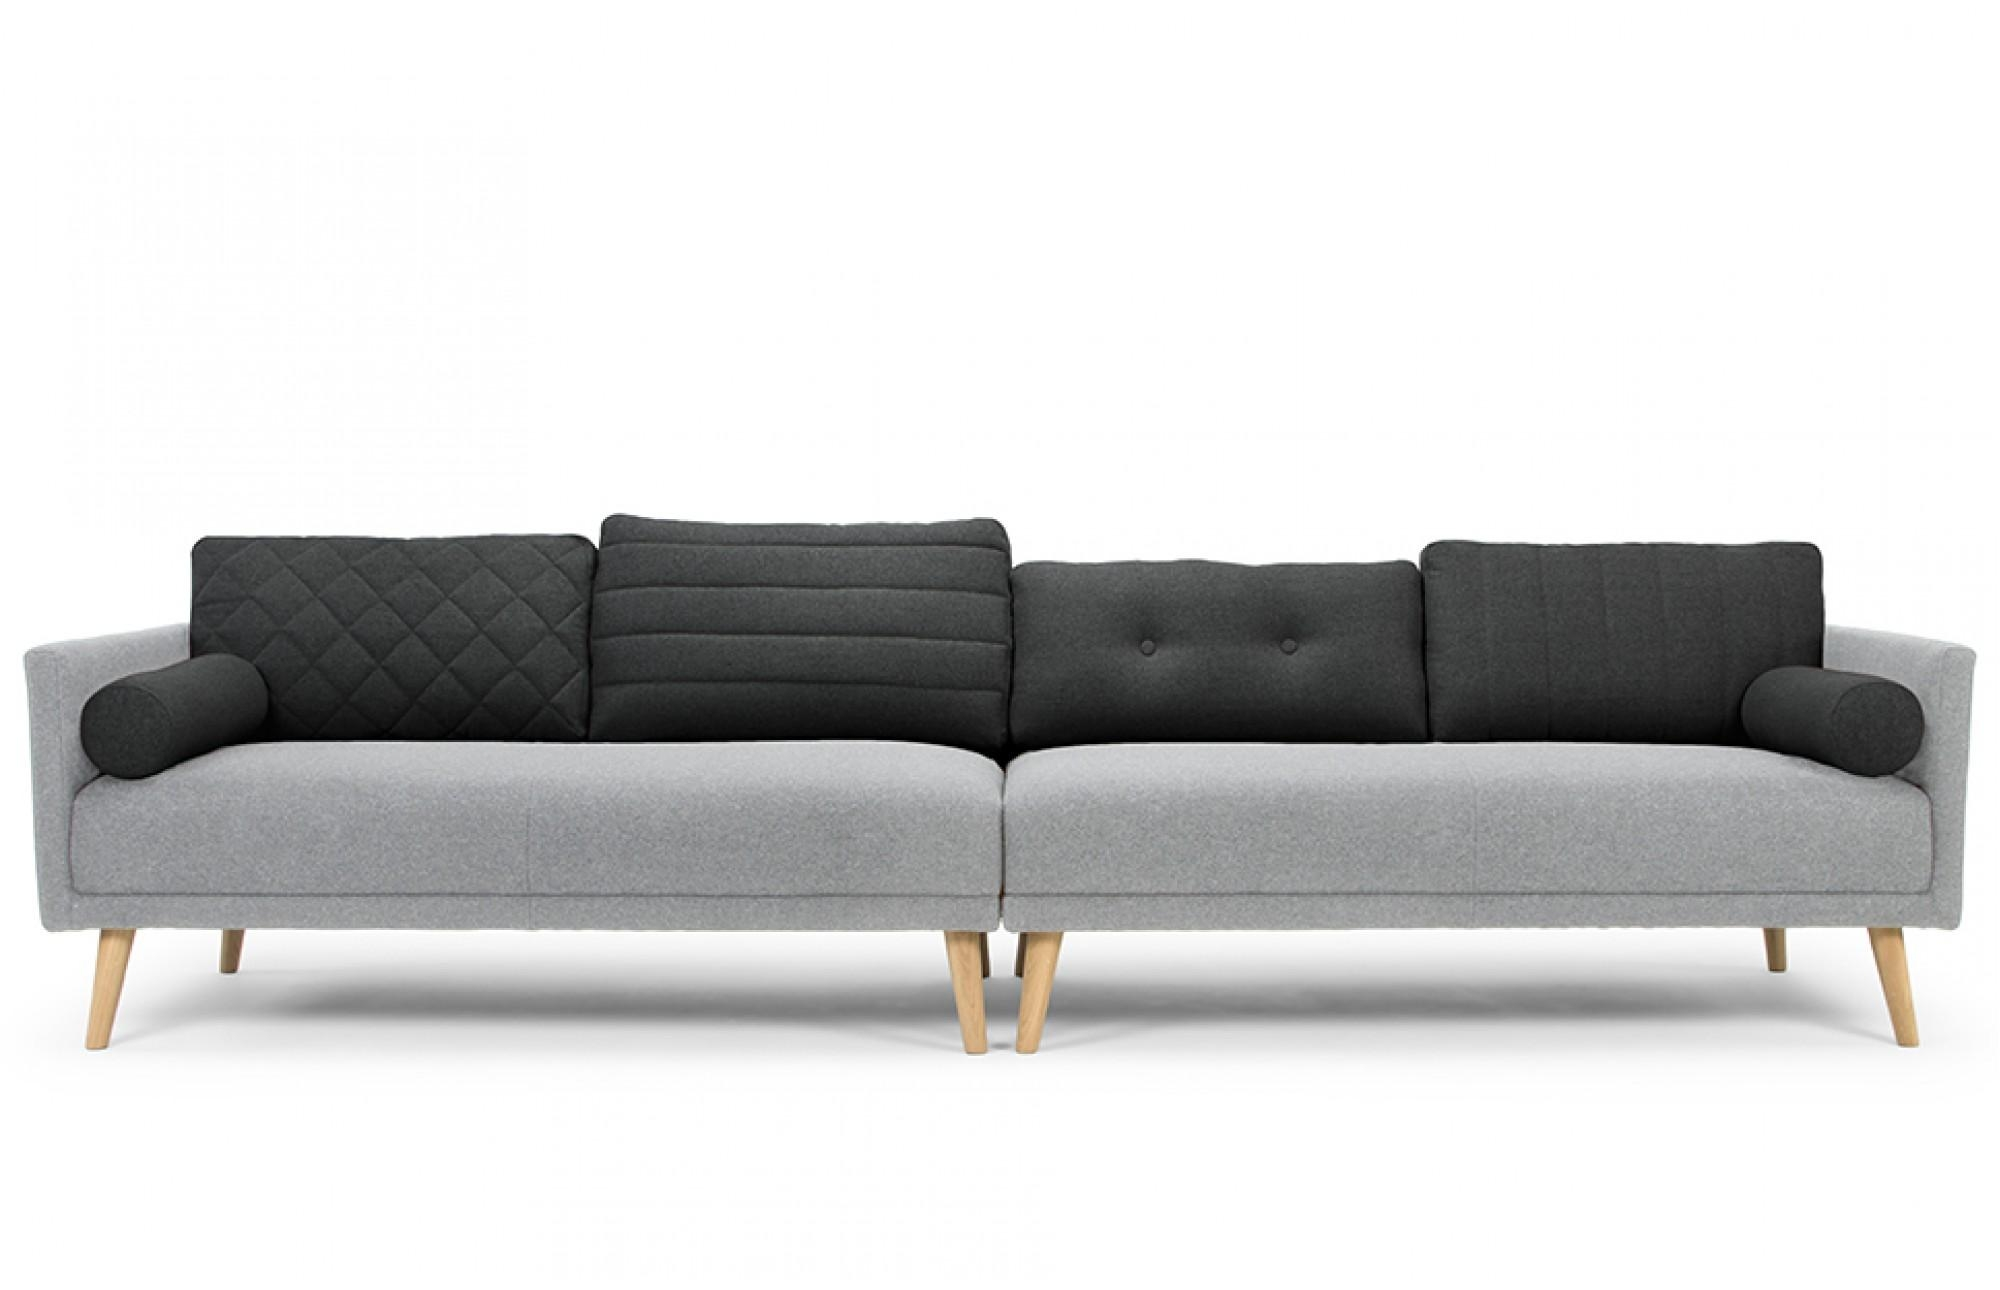 Dixie Mix 4 Seater Sofa Out And Out Original Intended For Four Seat Sofas (Image 13 of 20)